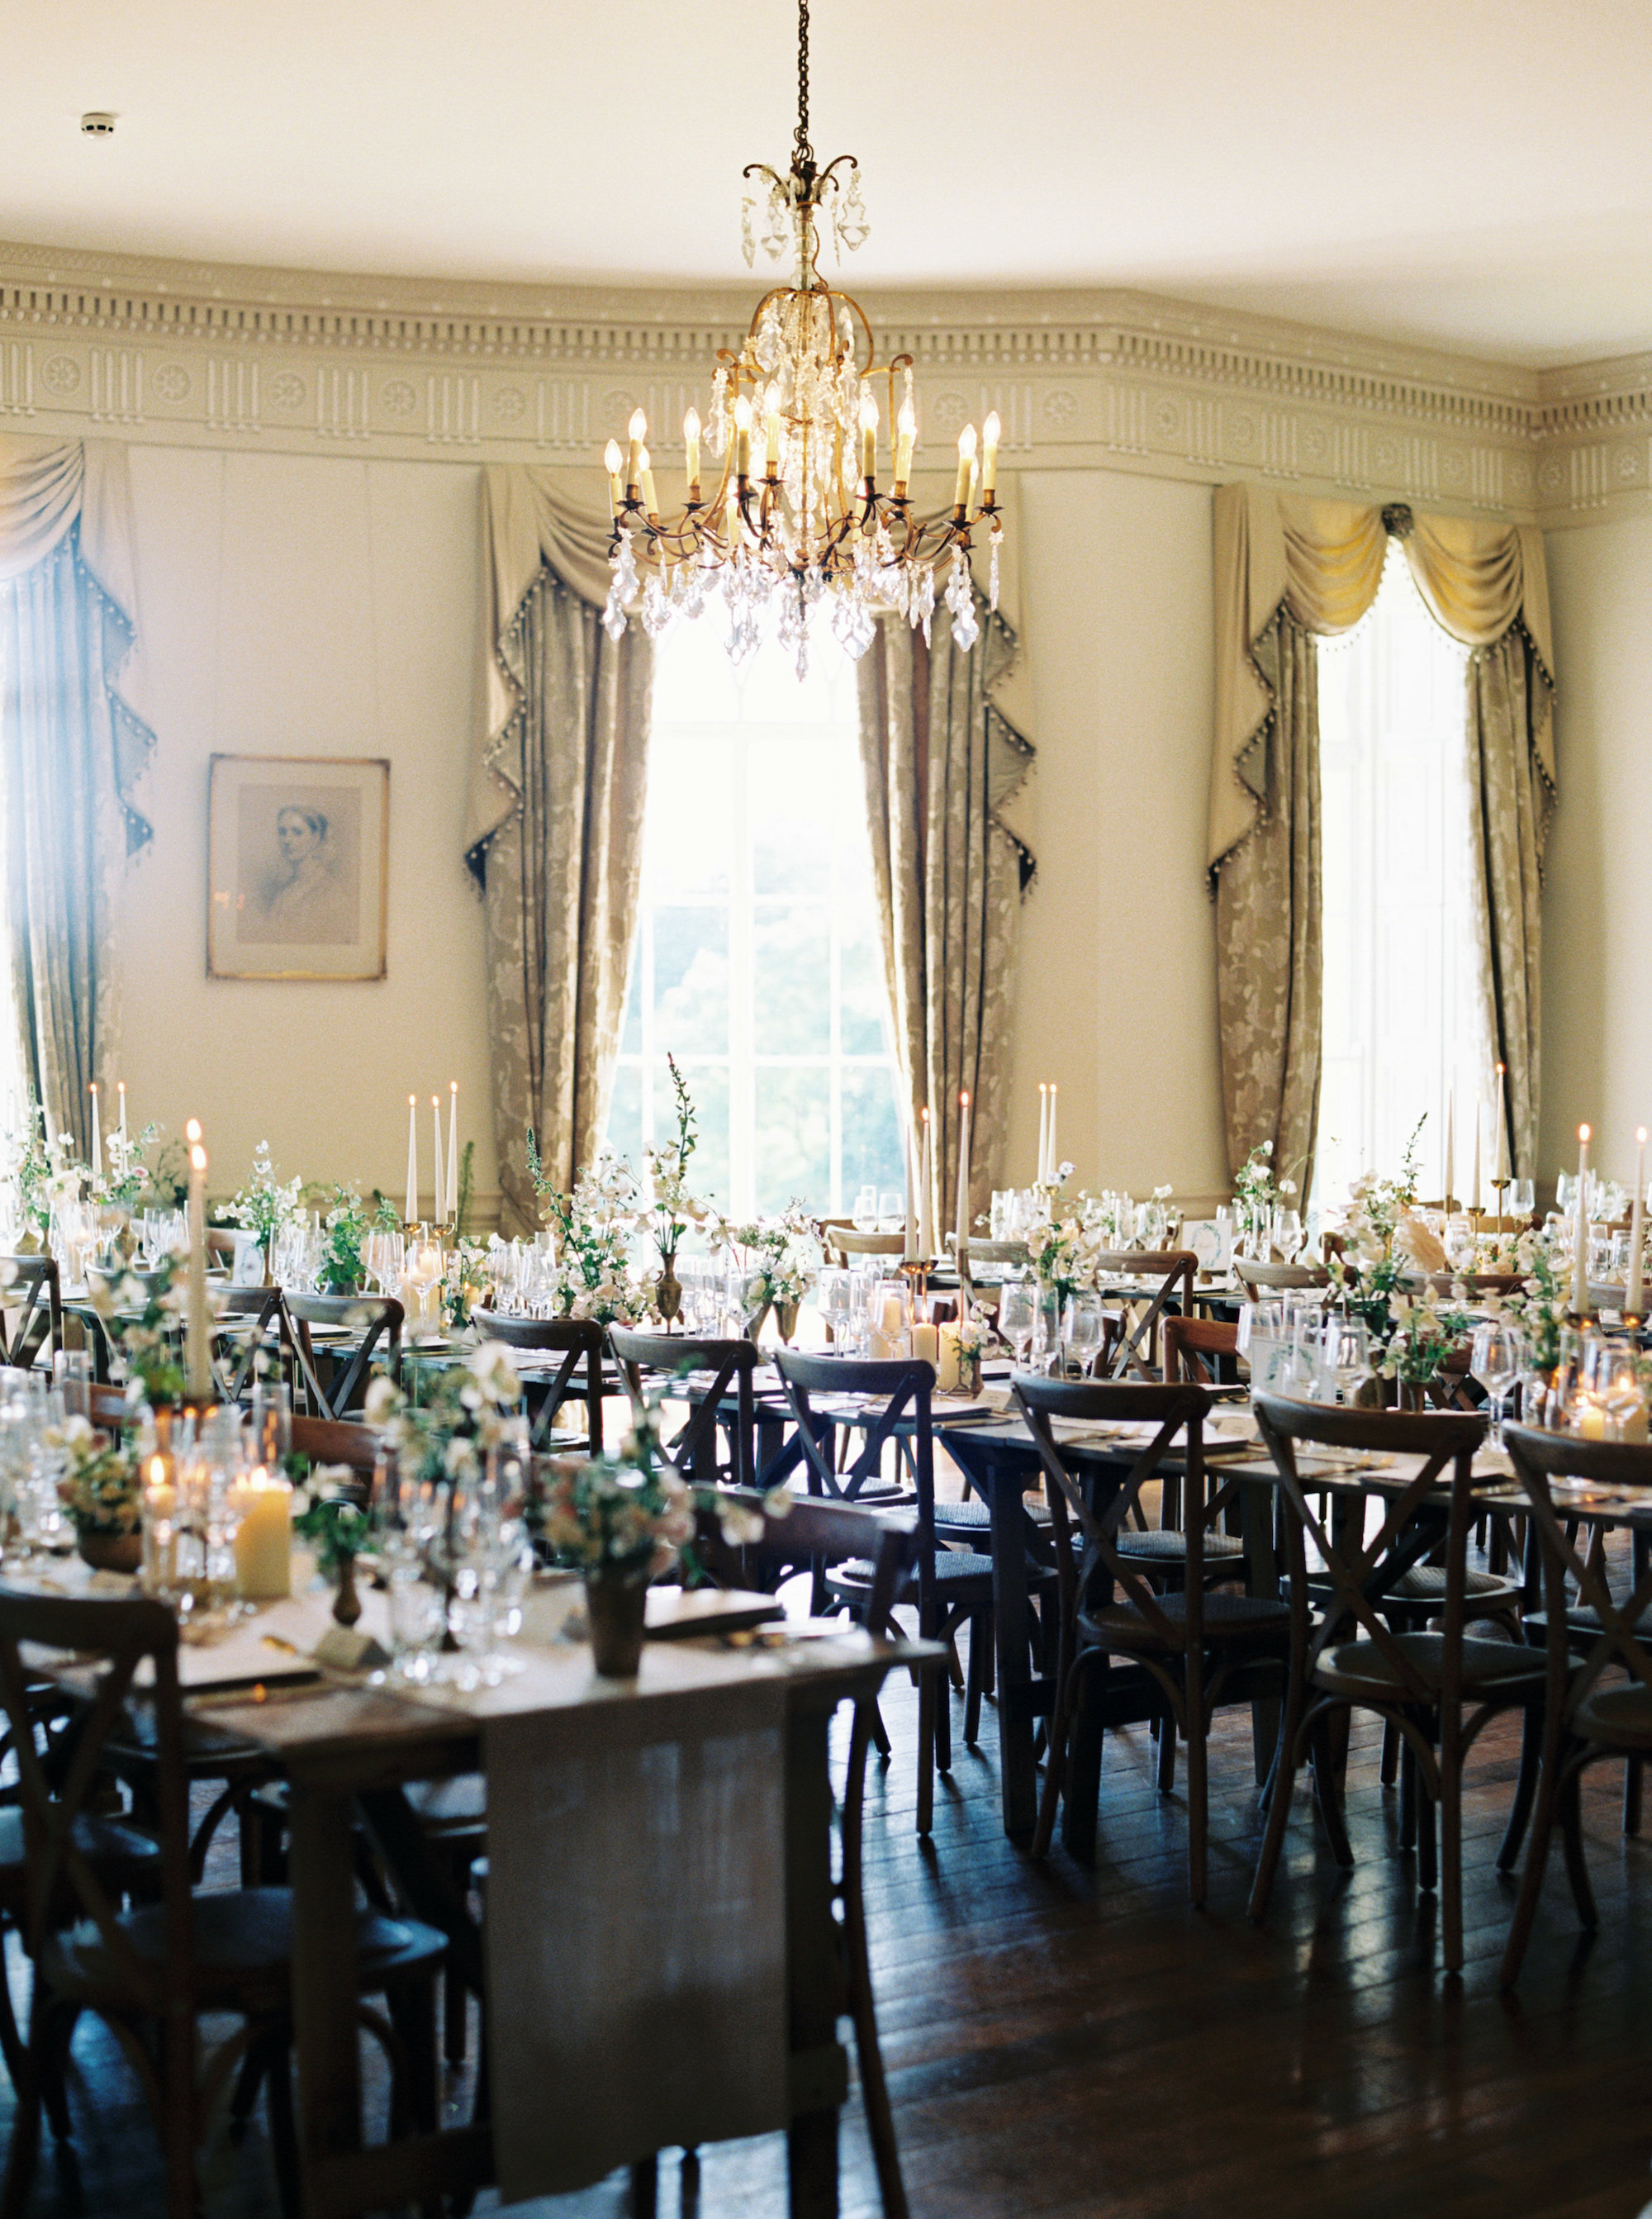 Luxury Wedding Planner UK | Jennifer & Timothy's English Country Manor Wedding | Soft Pink Pale Blue White and Silver Toned Green Neutral Tones American Bride North Cadbury Court | Nicole Colwell Photography 1205.jpg